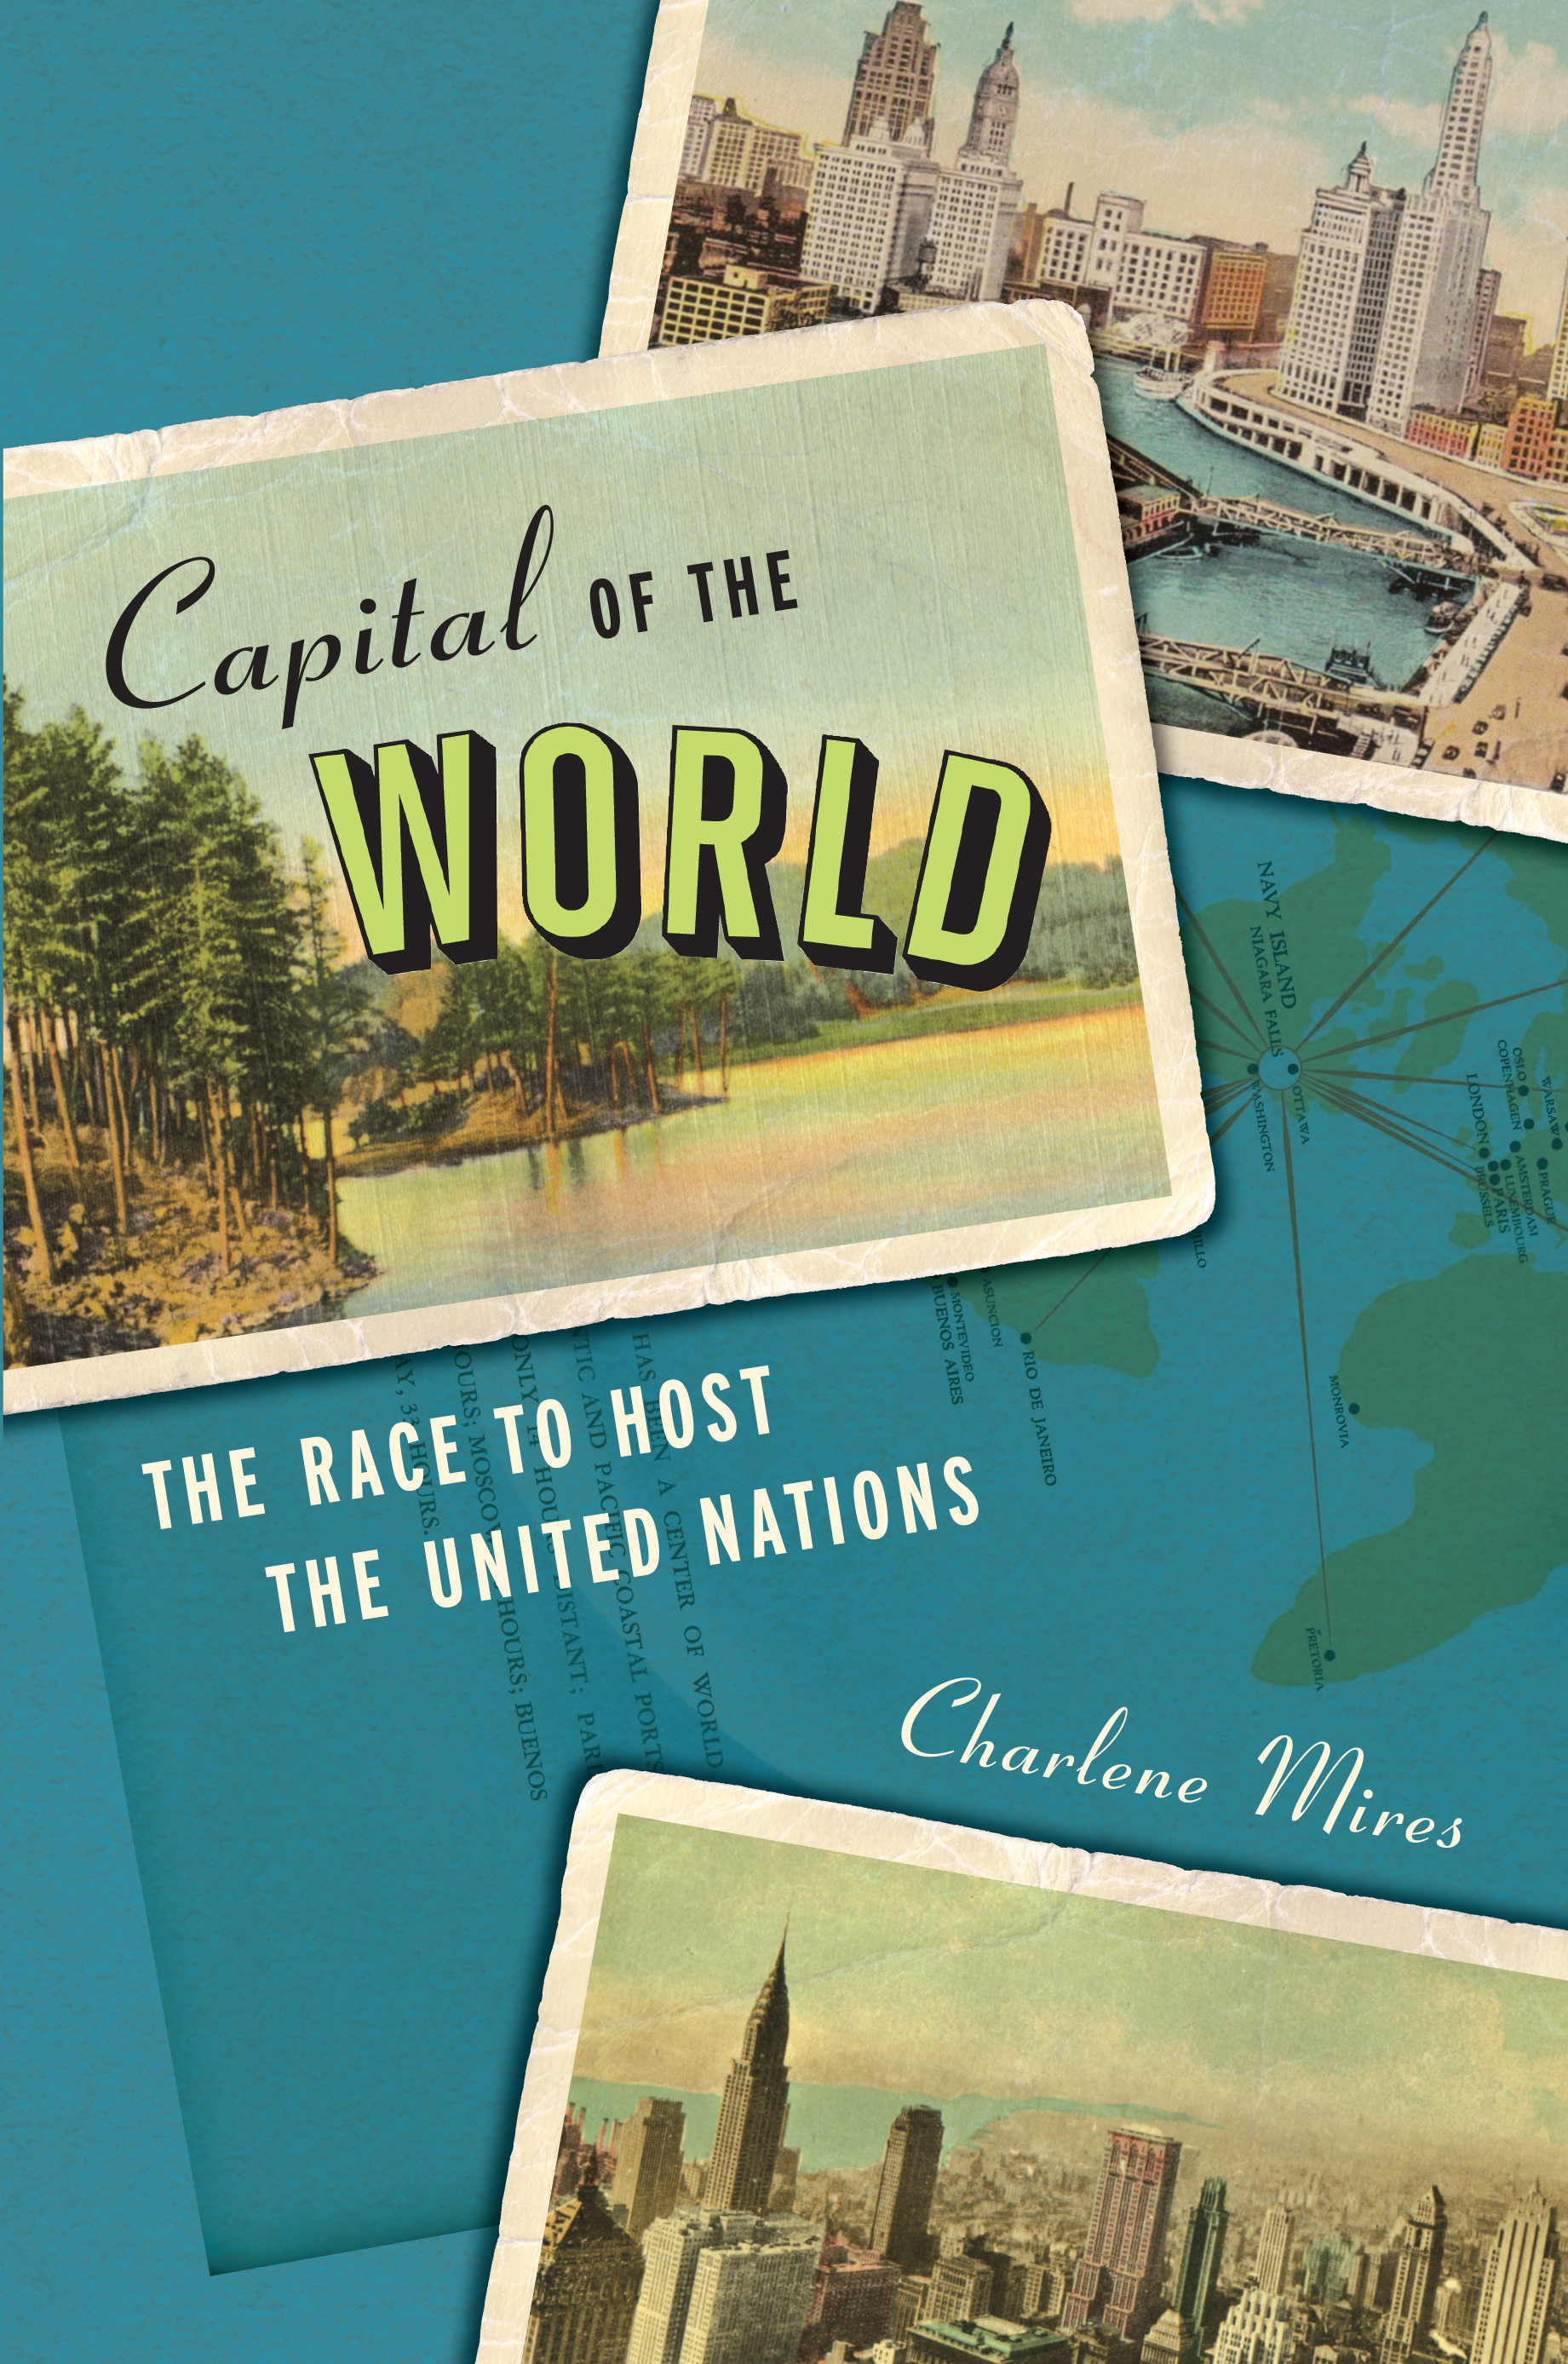 Capozzola Review of Capital of the World: The Race to Host the United Nations, by Charlene Mires